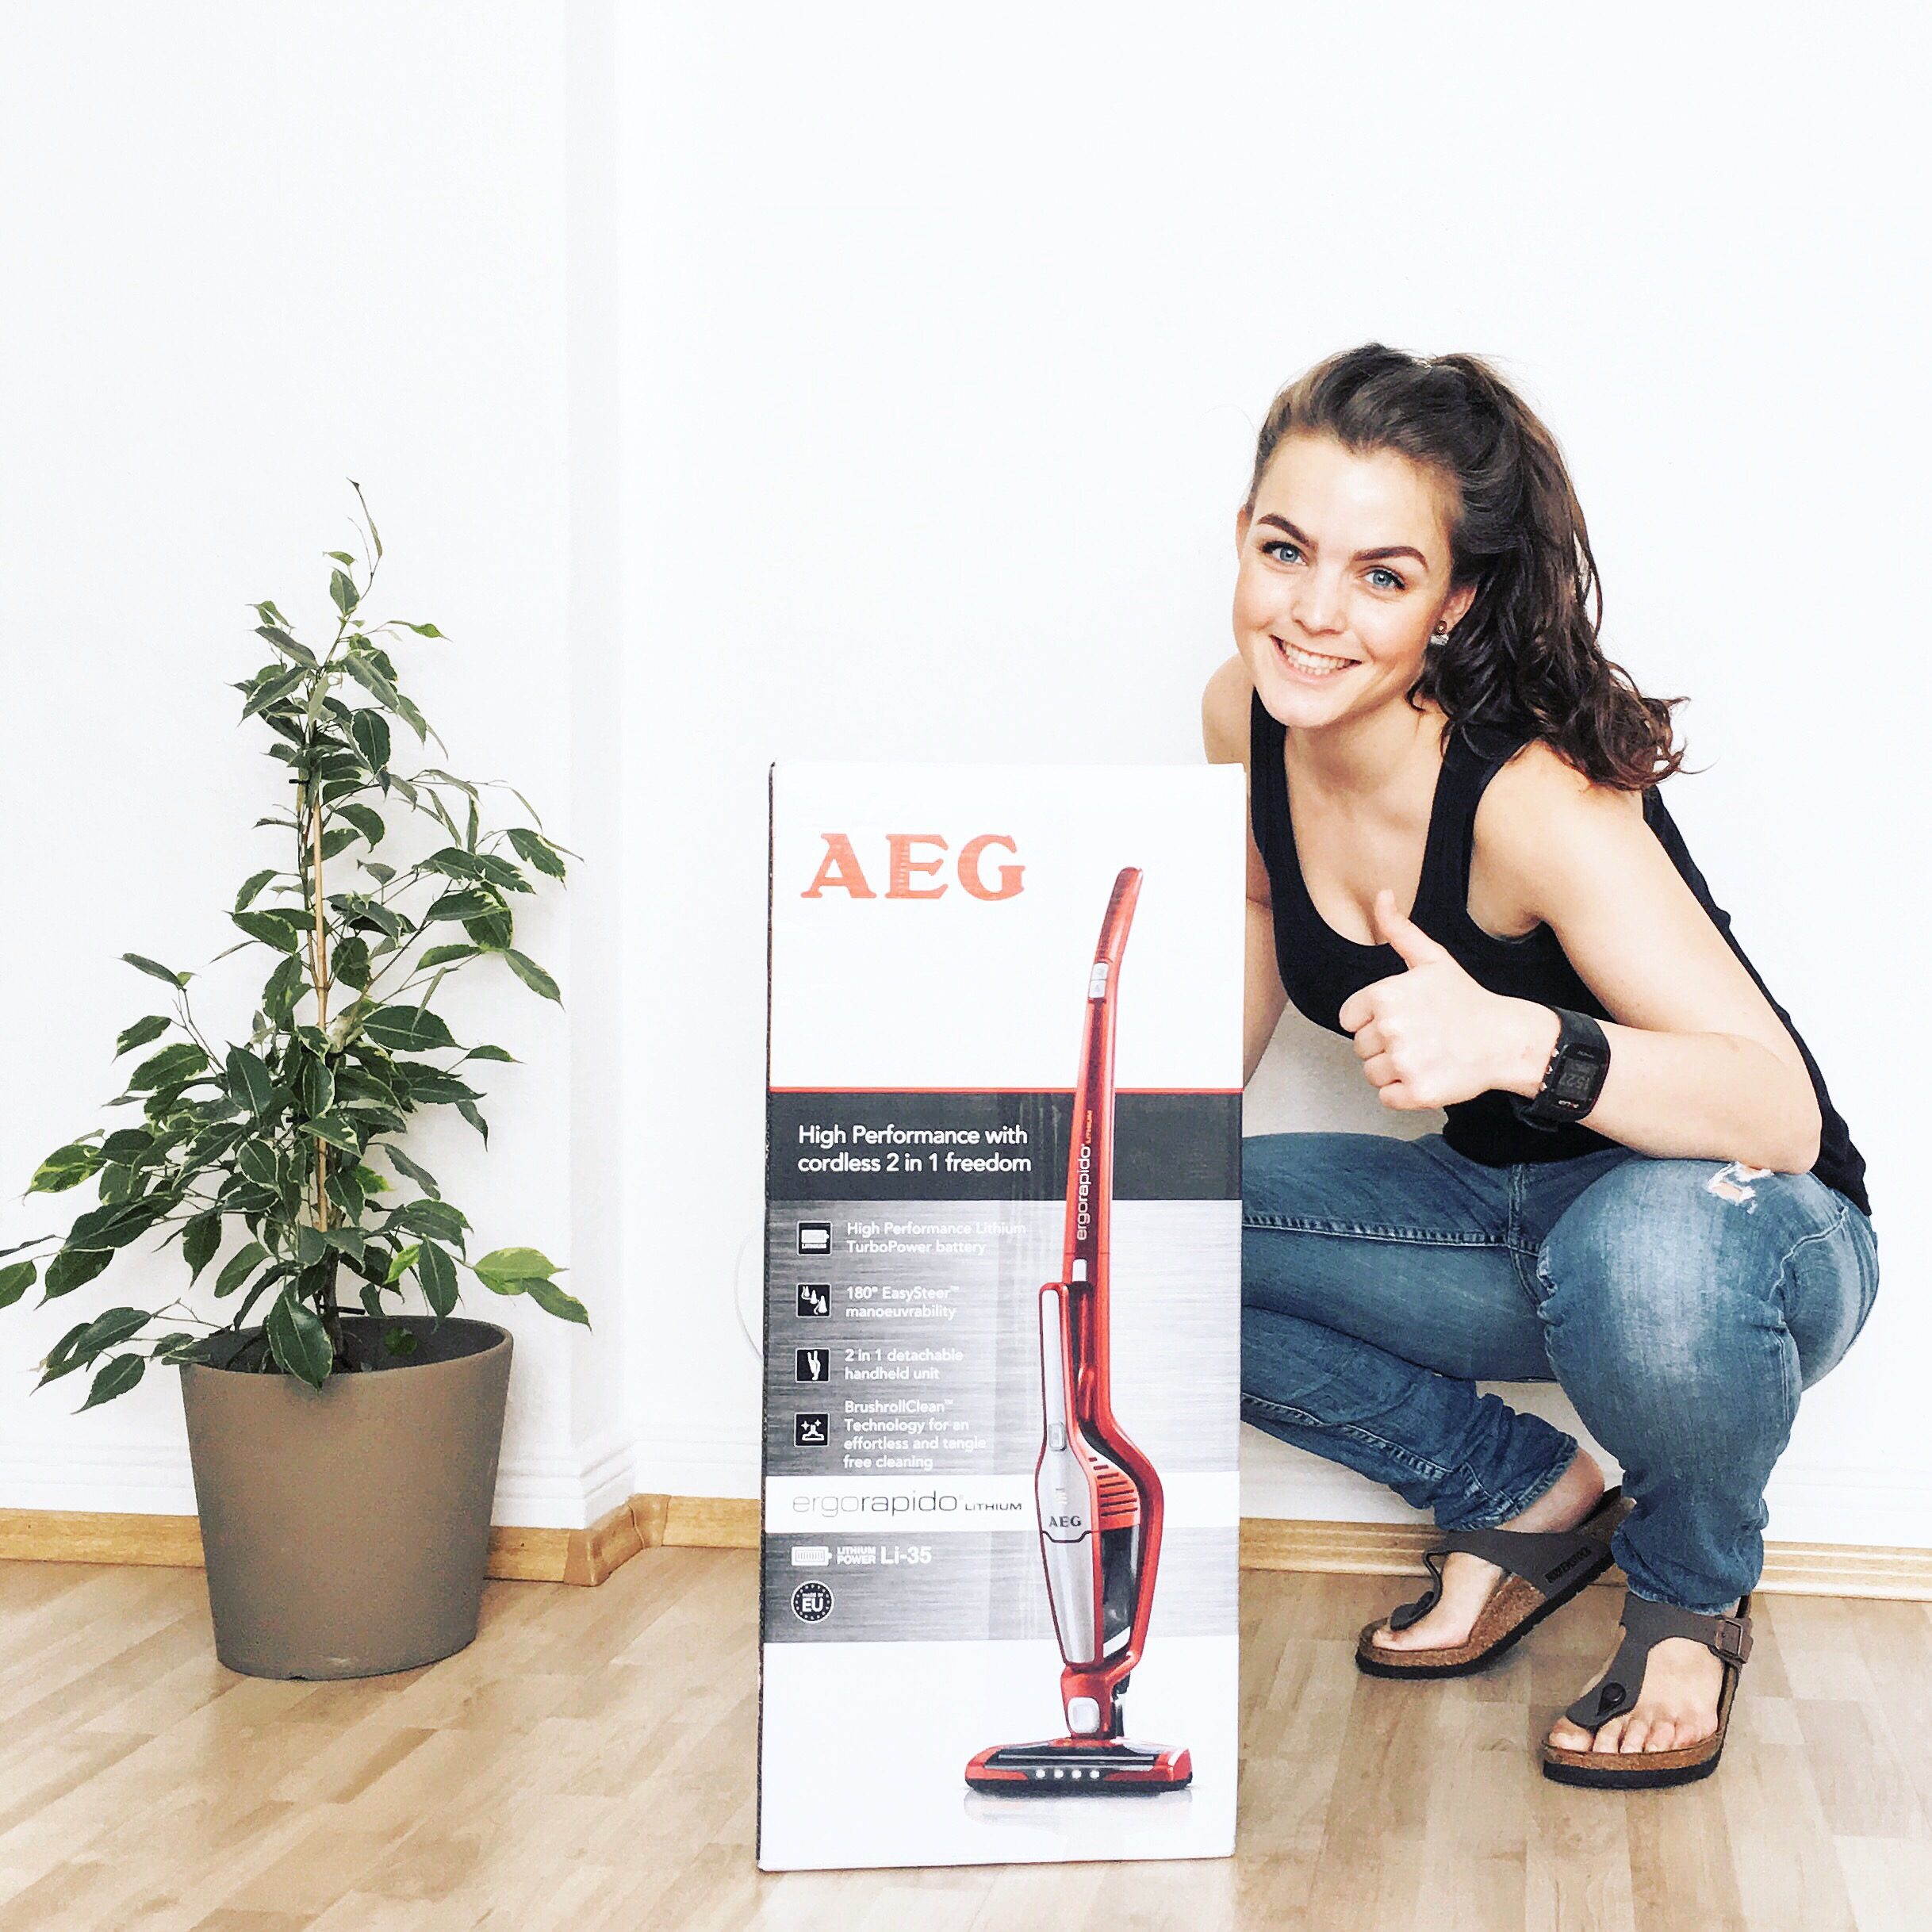 Produkttest: AEG Ergorapido AG35POWER